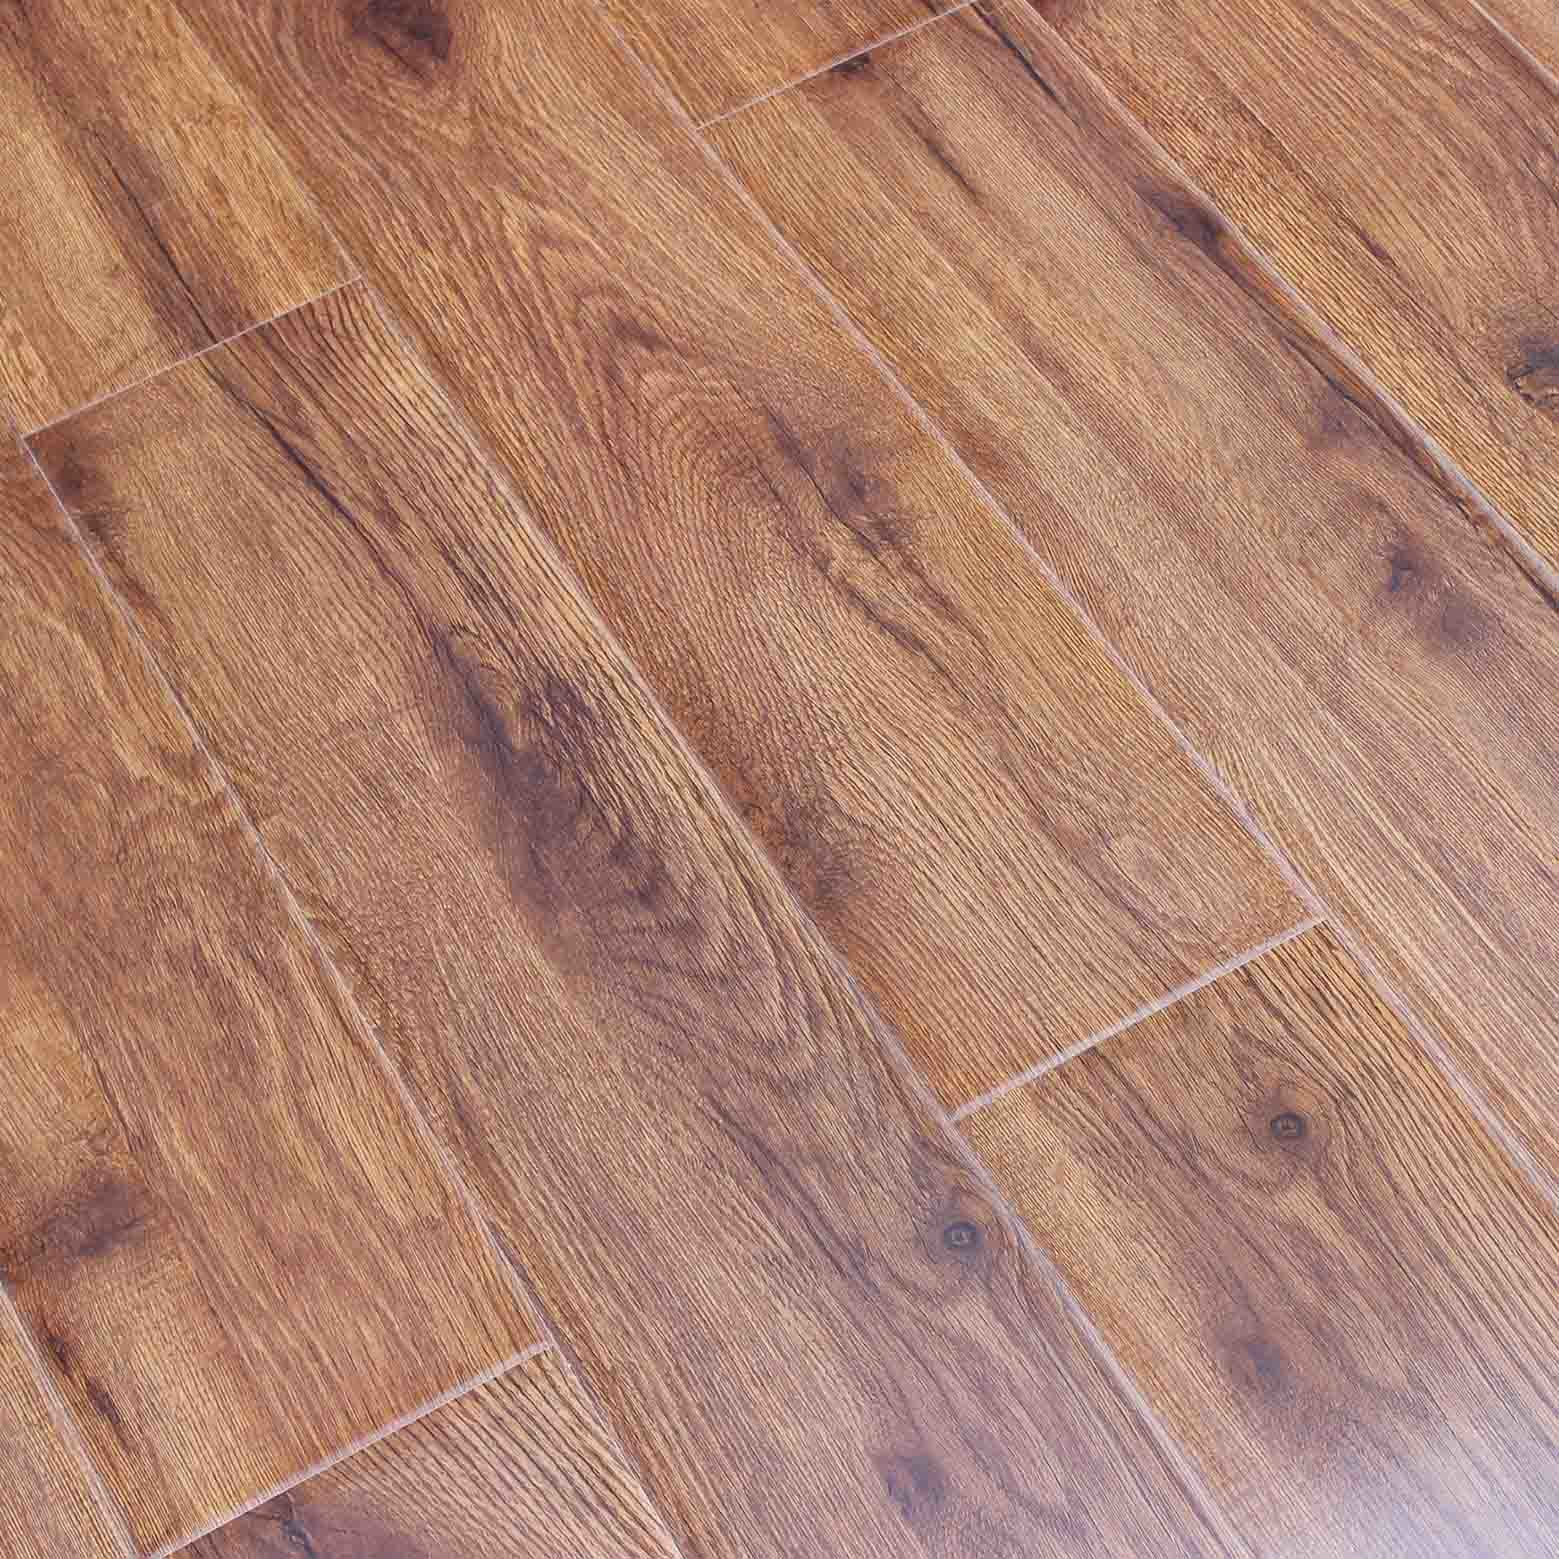 China Factory Supply High Quality Best Ac4 Laminate Flooring With U Groove Floor Laminated